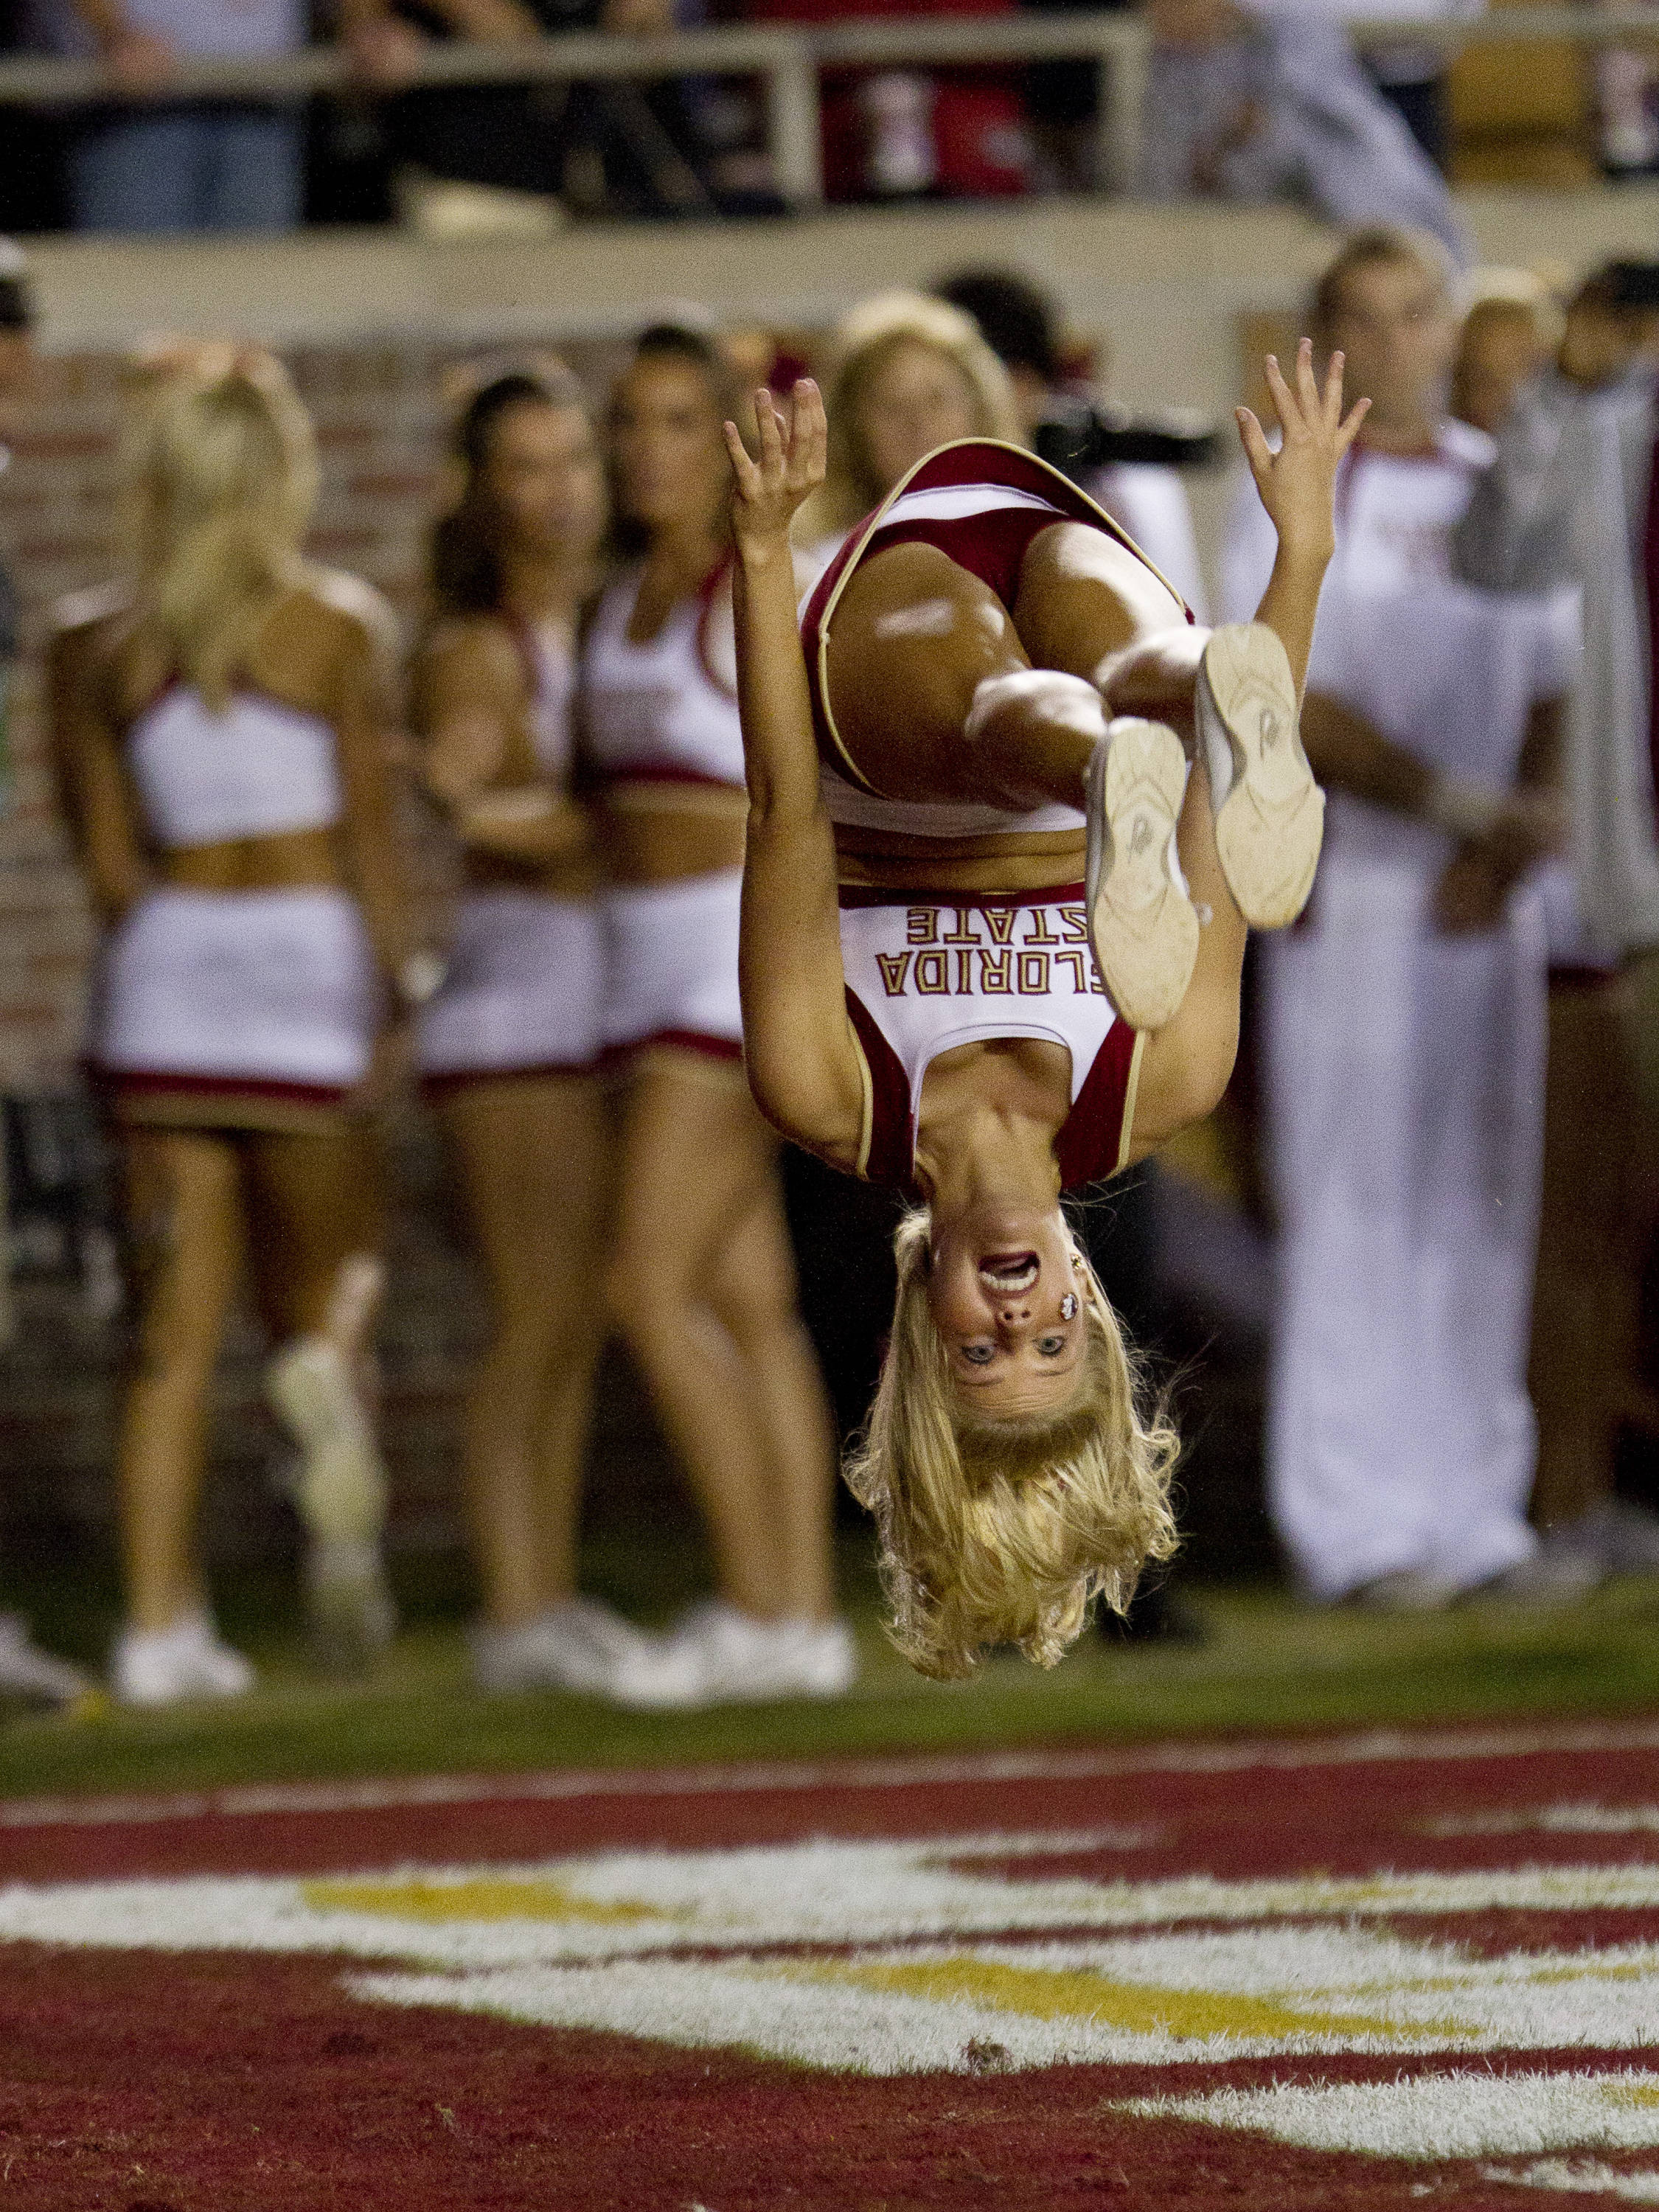 An FSU cheerleader celebrates after the 'Noles score during the first half of the game against Virginia on November 19, 2011.